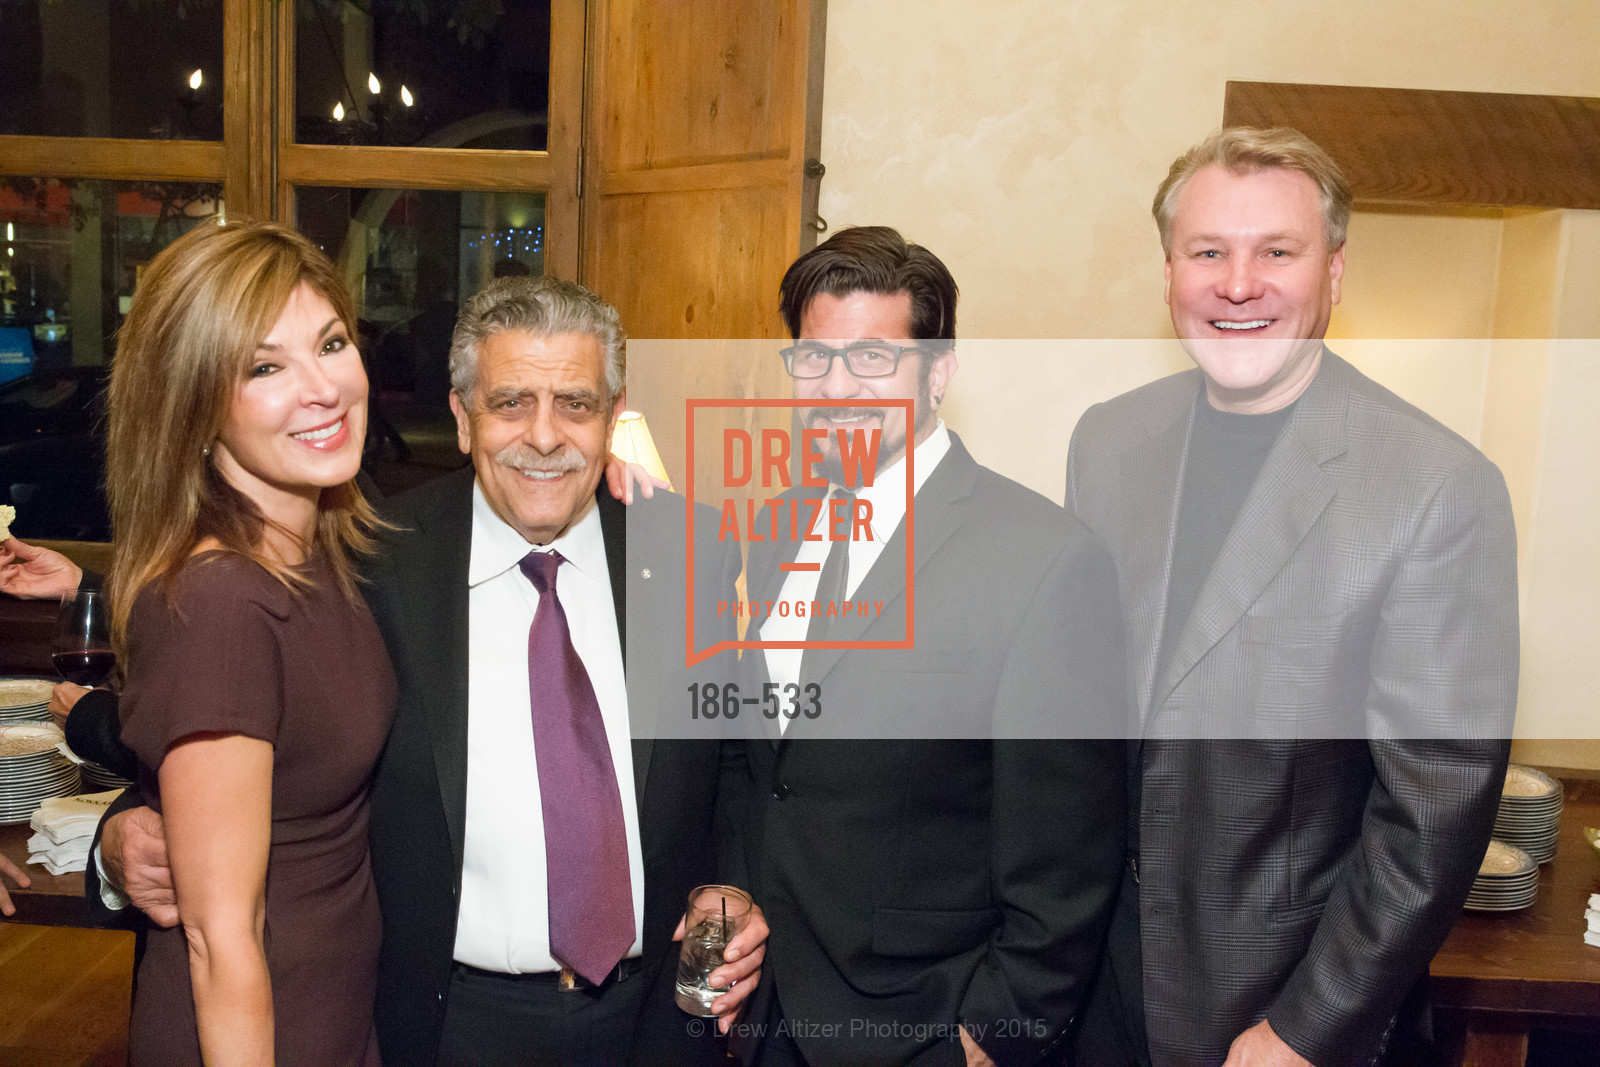 Vicki Liviakis, Ken Frangadakis, George Frangadakis, Randy Fry, Hellenic Charity Ball Cocktail Reception, Kokkari. 200 Jackson St, San Francisco, CA 94111, November 13th, 2015